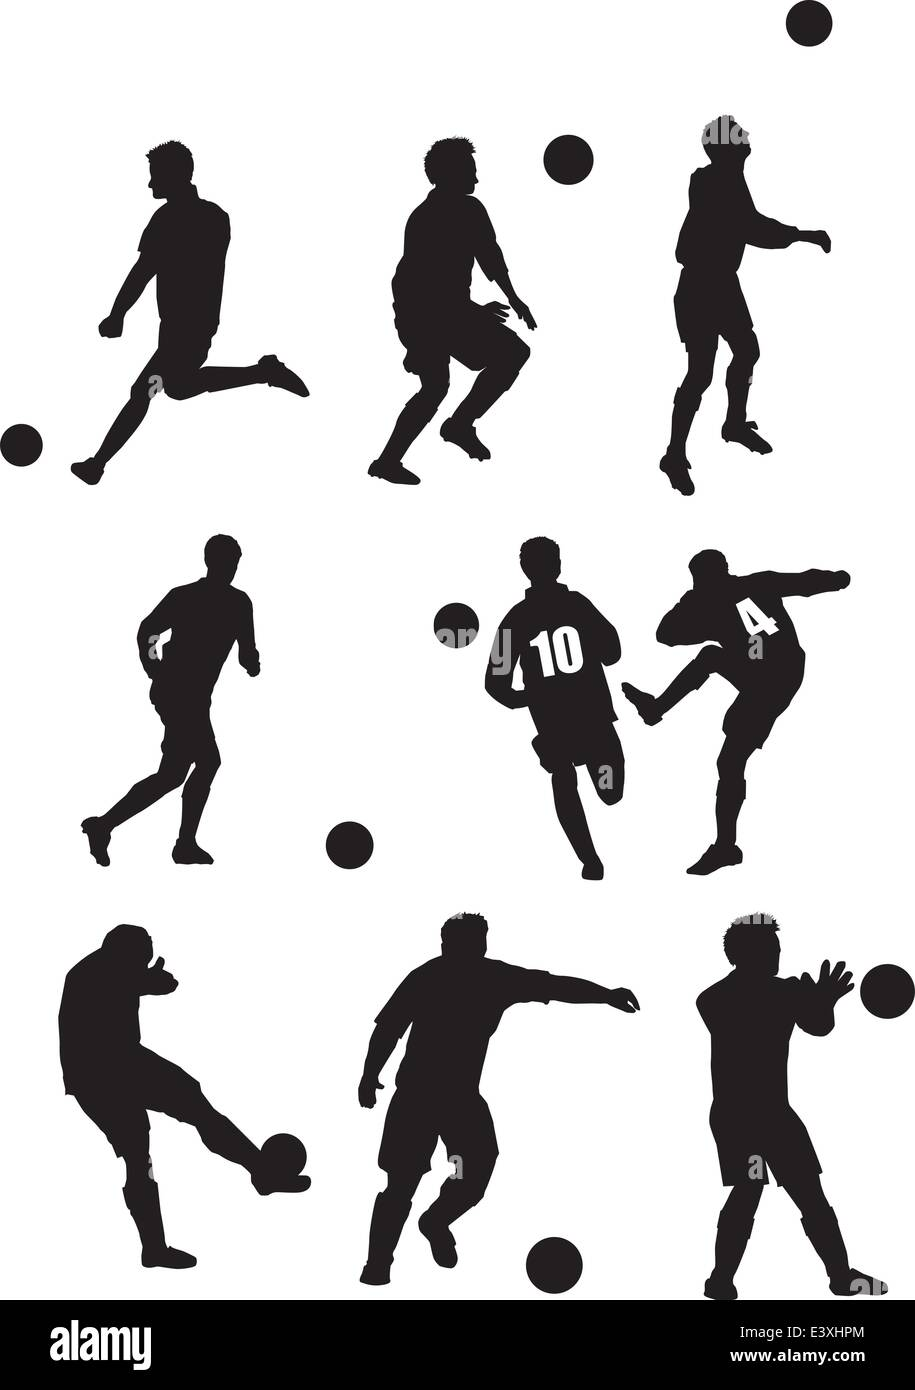 Illustration of  a set of footballer silhouettes - Stock Vector